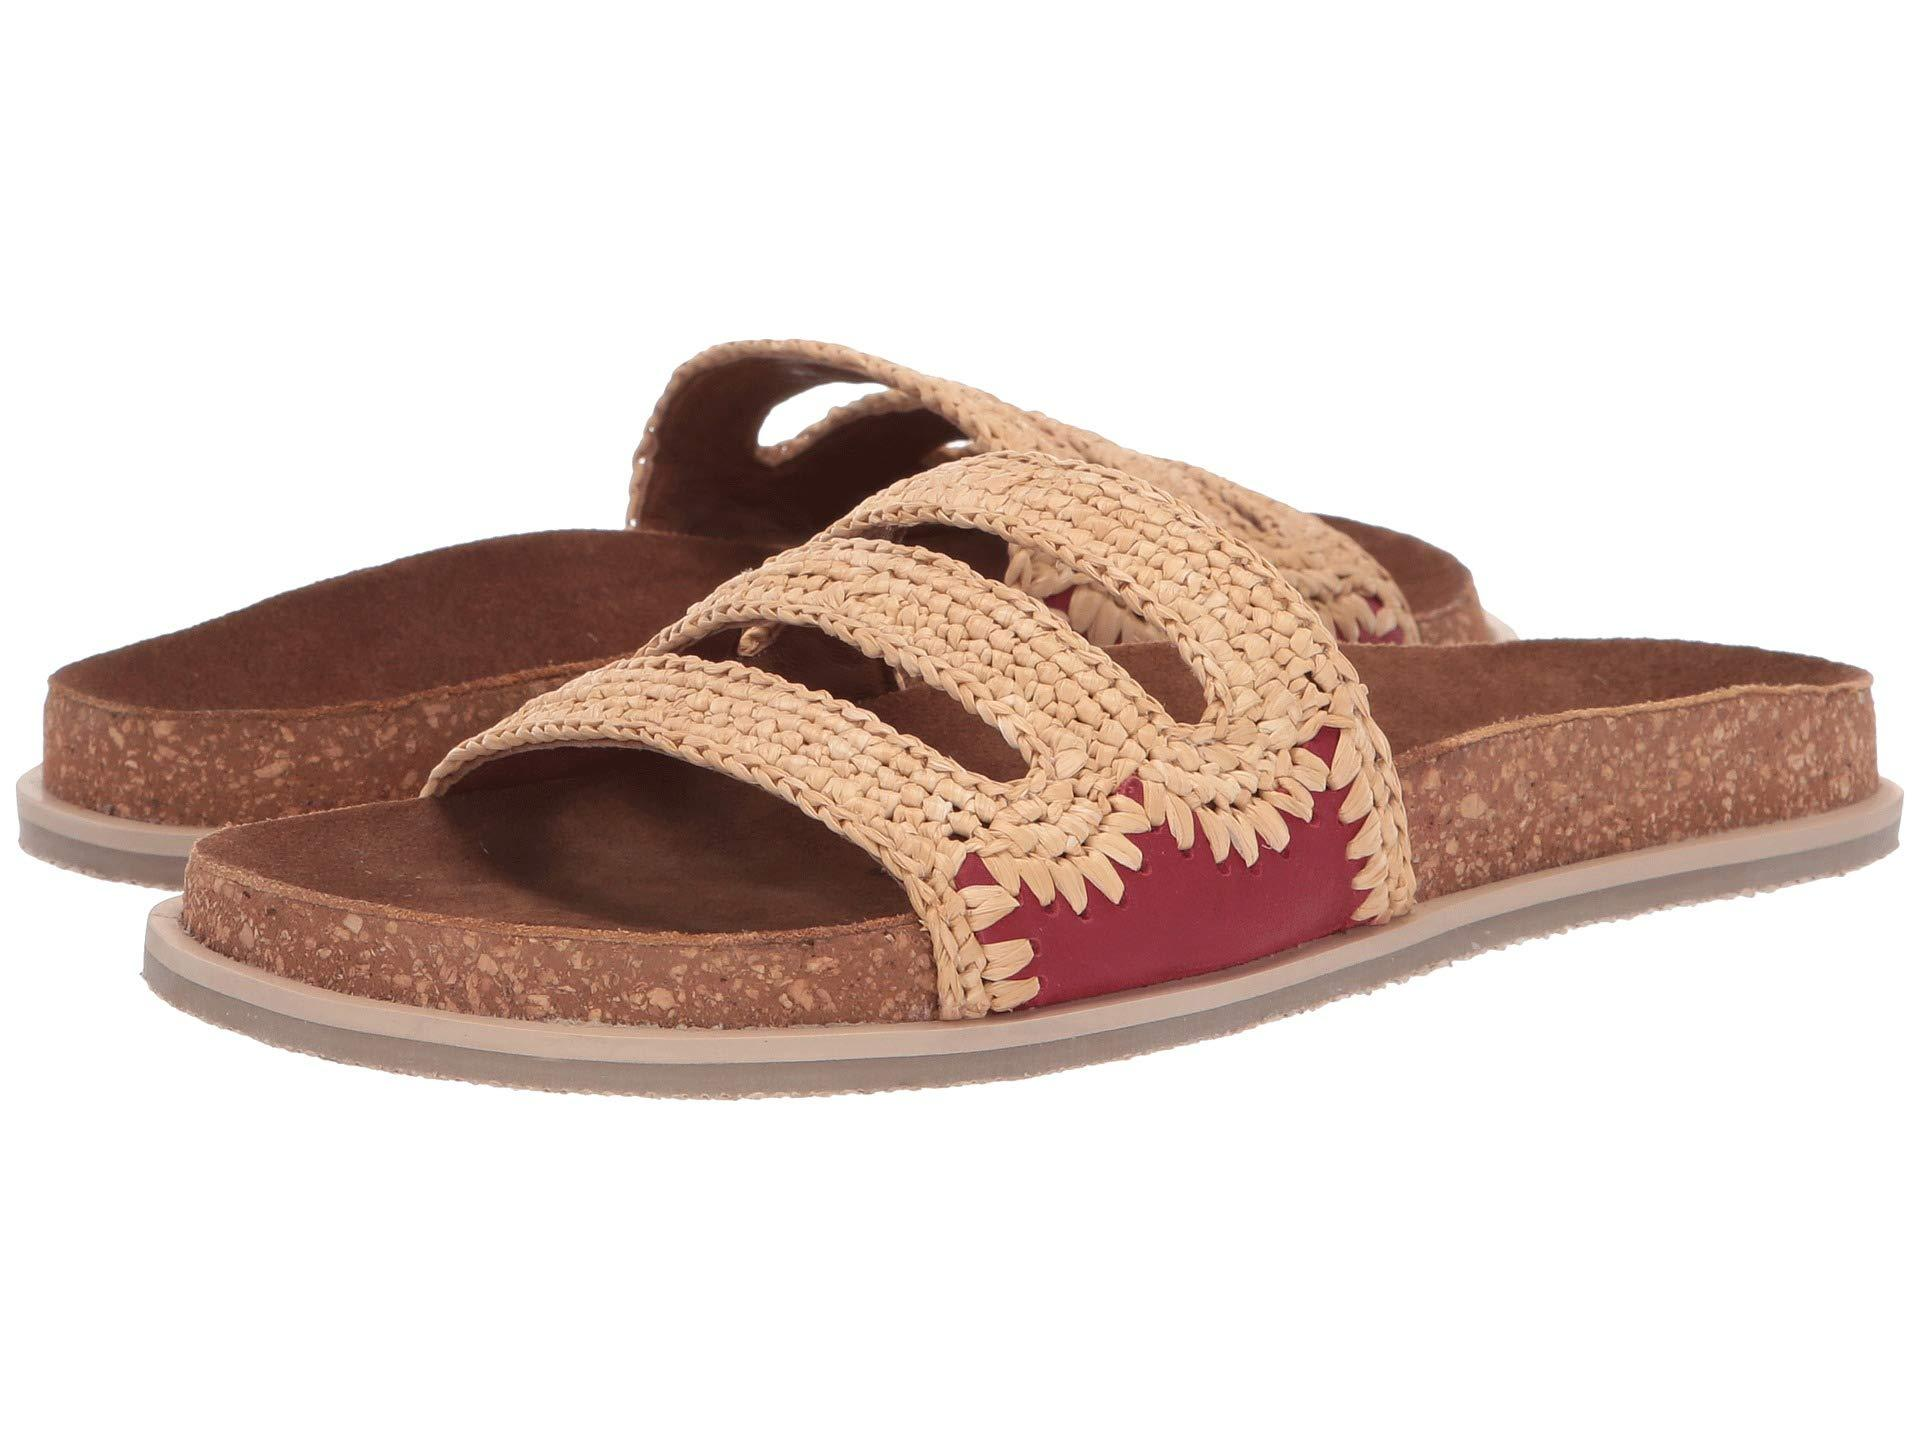 ac740f72032 Lyst - Free People Crete Footbed Sandal (red) Women s Sandals in Red